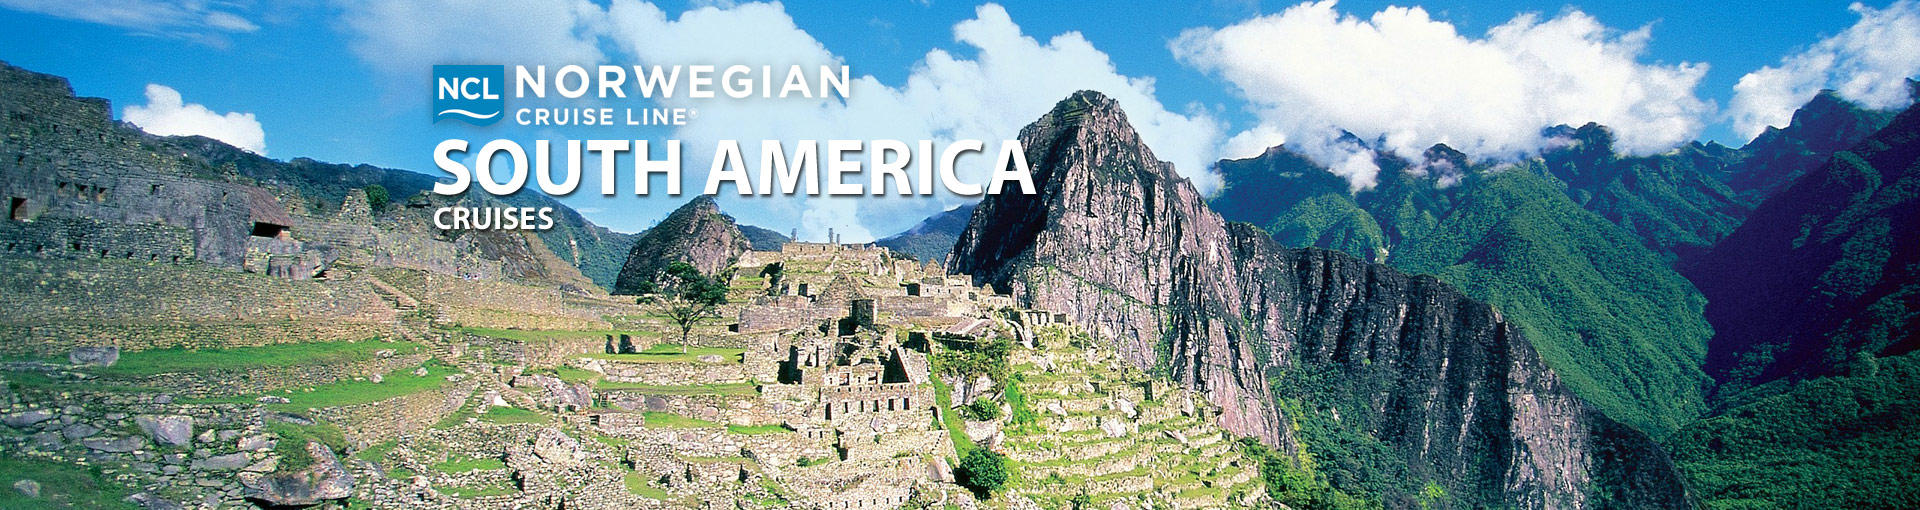 Norwegian South America Cruises And South America - Cruise to south america